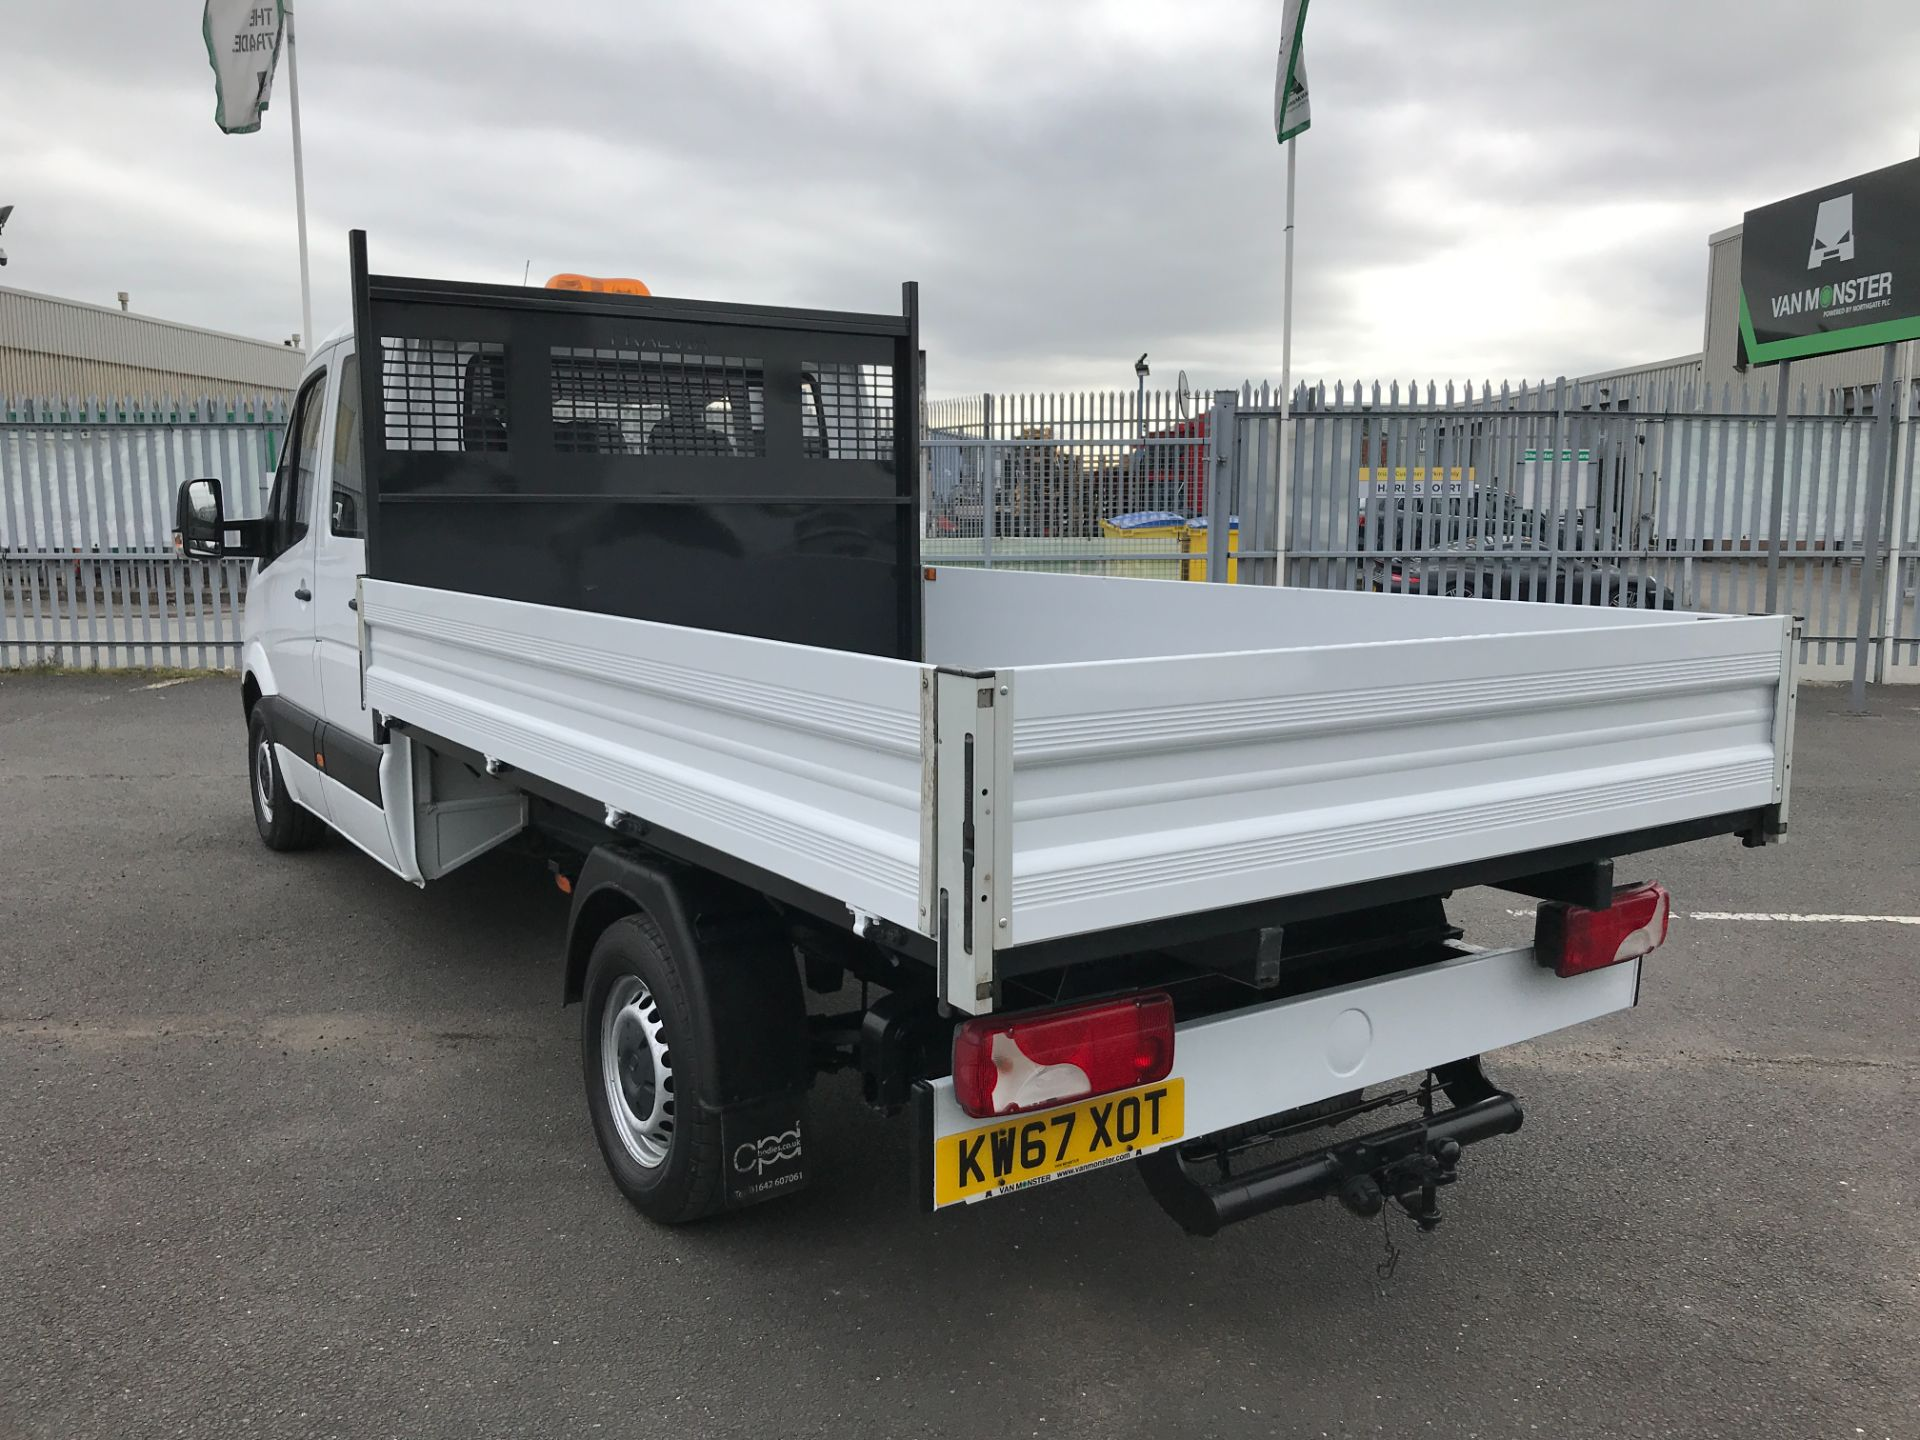 2018 Mercedes-Benz Sprinter 314CDI DOUBLE CAB TIPPER 140PS EURO 6 (KW67XOT) Image 11